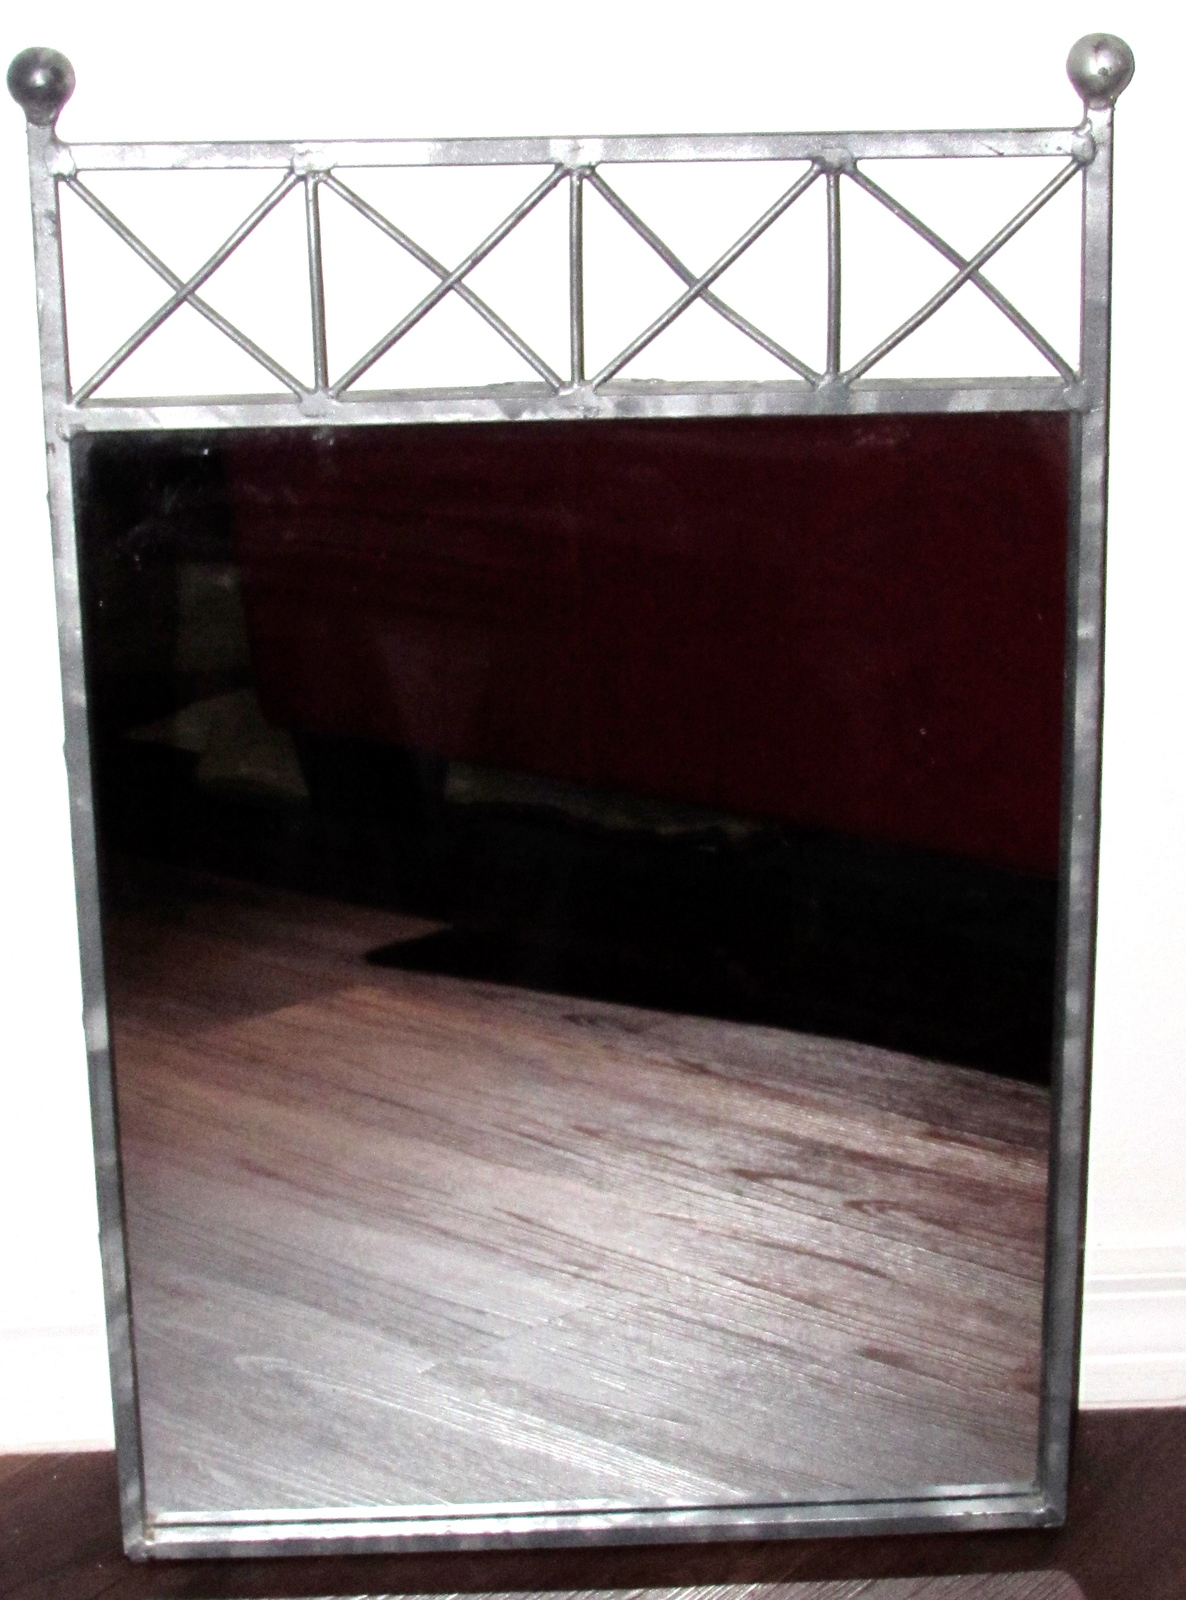 Metal/Wrought Iron Framed Decorative Mirror Square - Antique Silver Finish